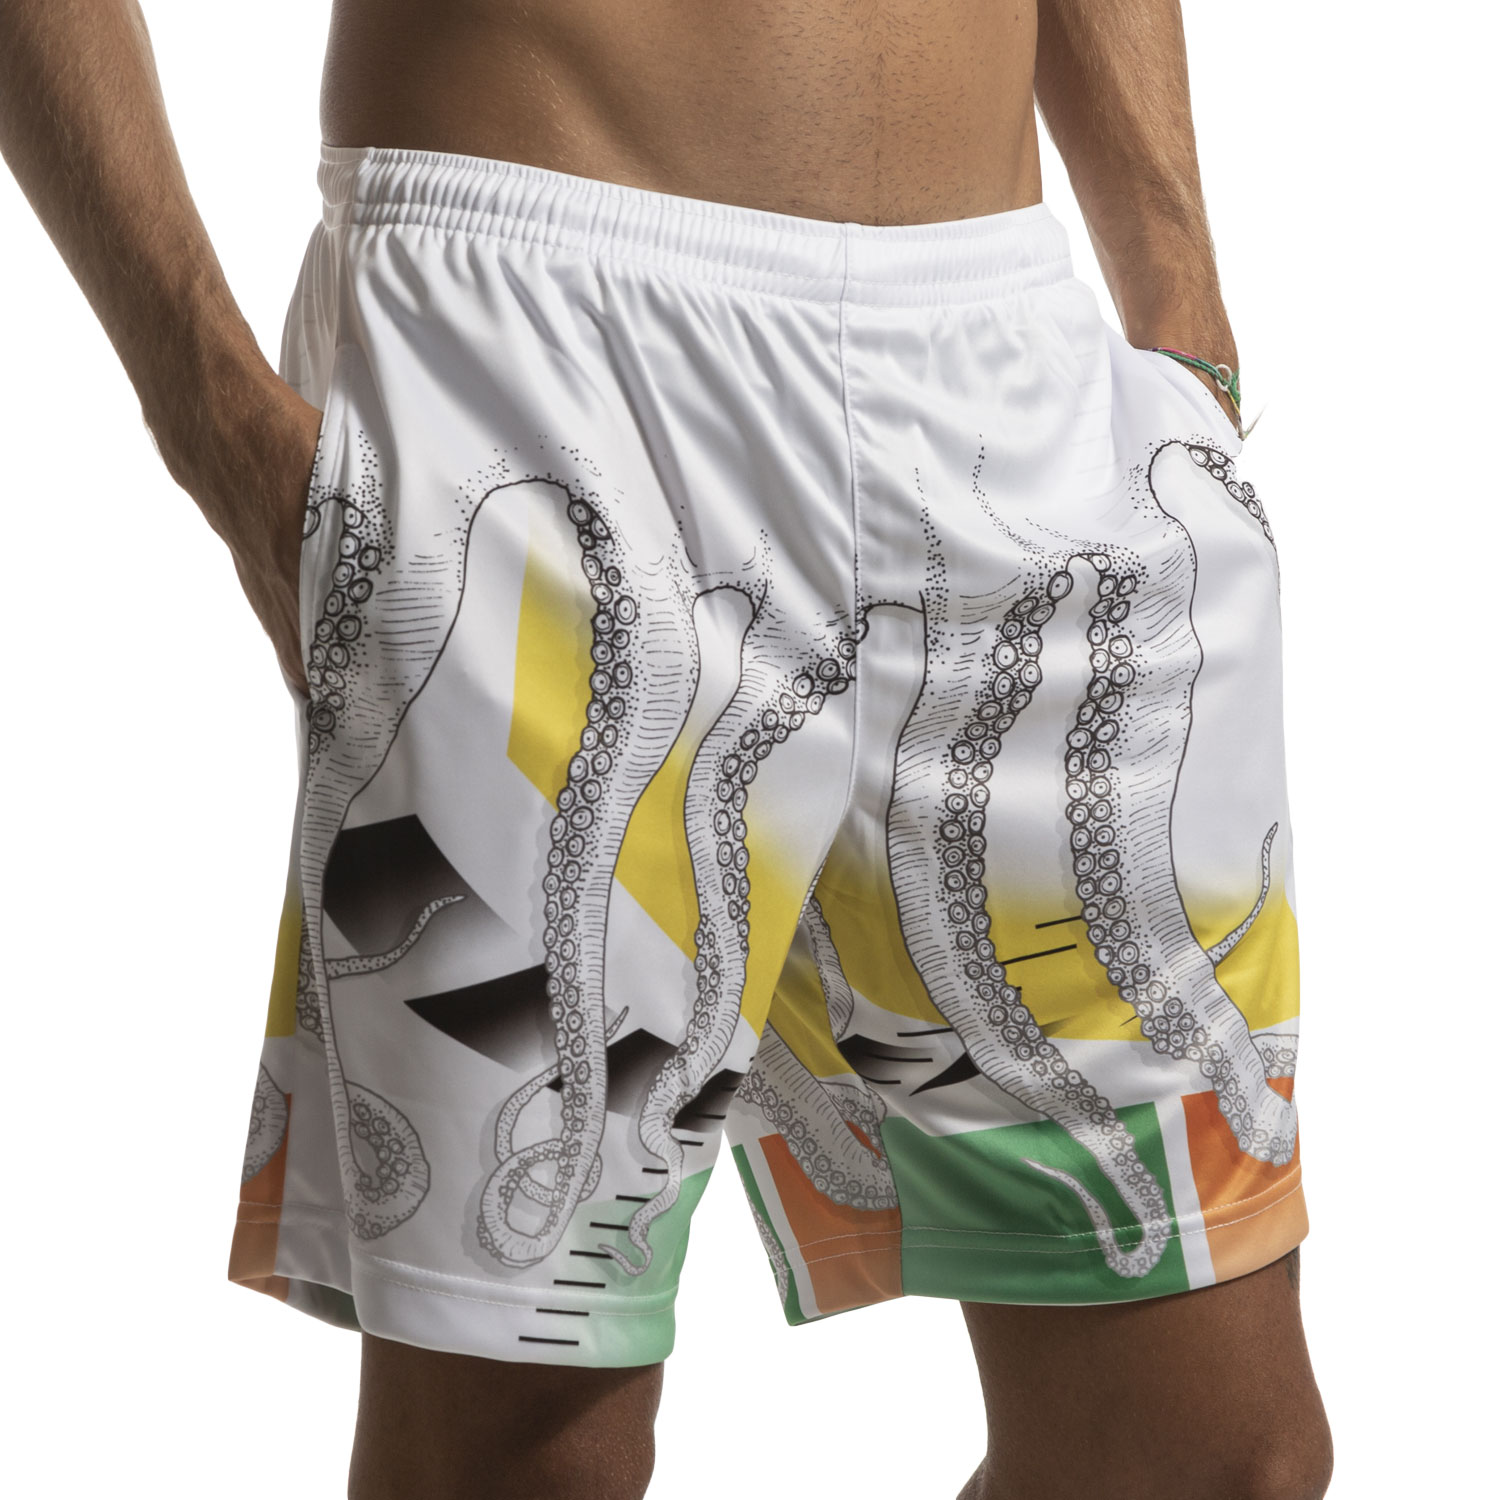 Australian for Octopus Ace Heritage 7in Shorts - White